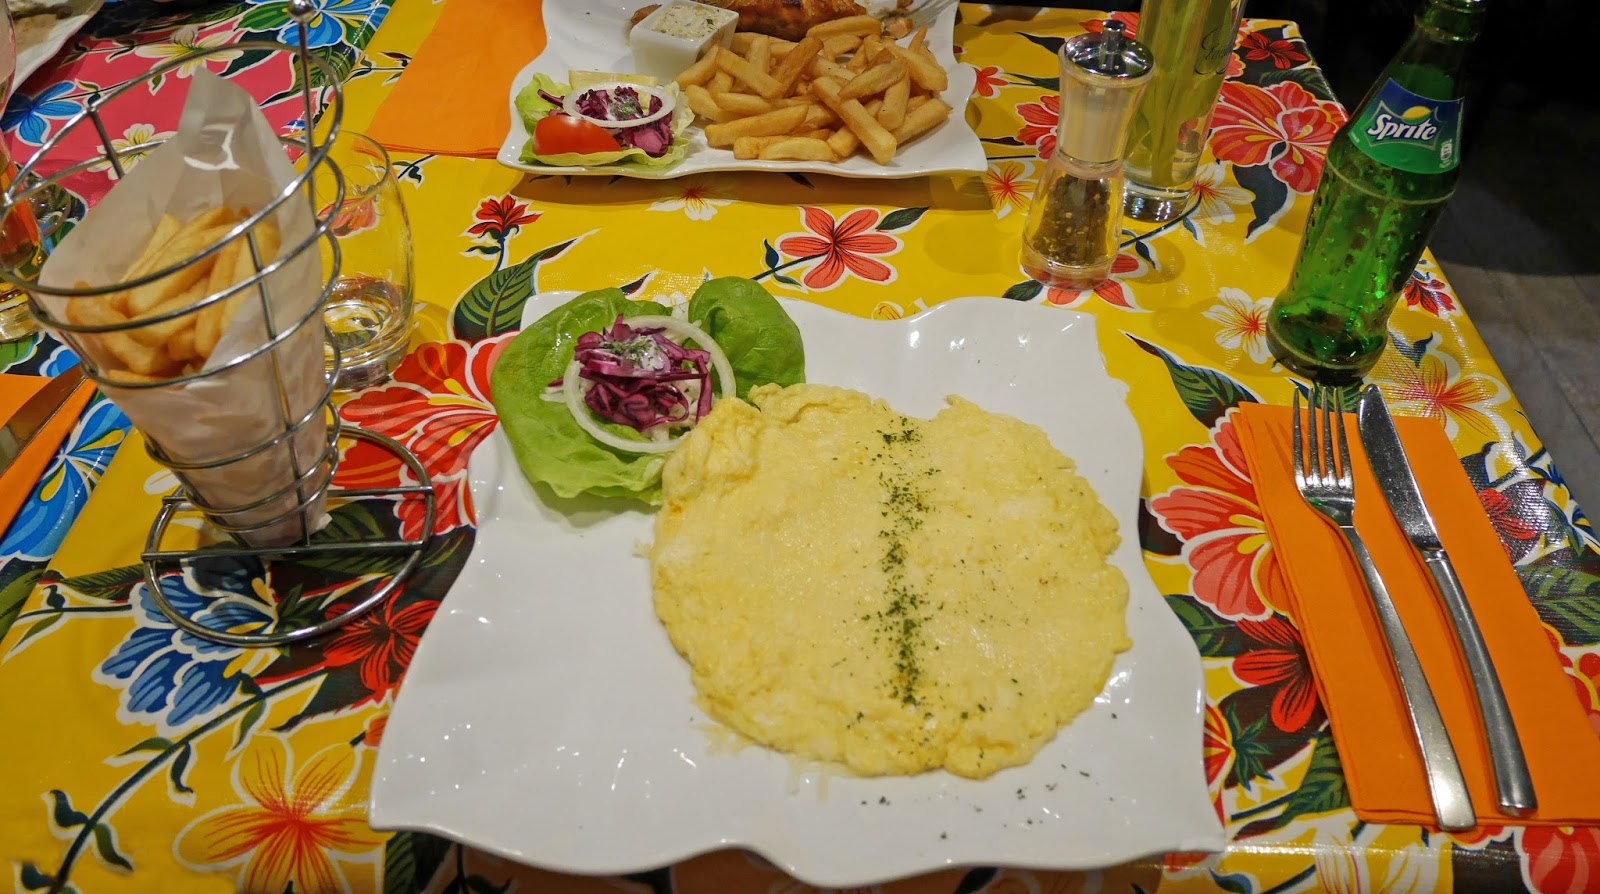 Omelette and fries for dinner at Arthie's Restaurant, Bruges